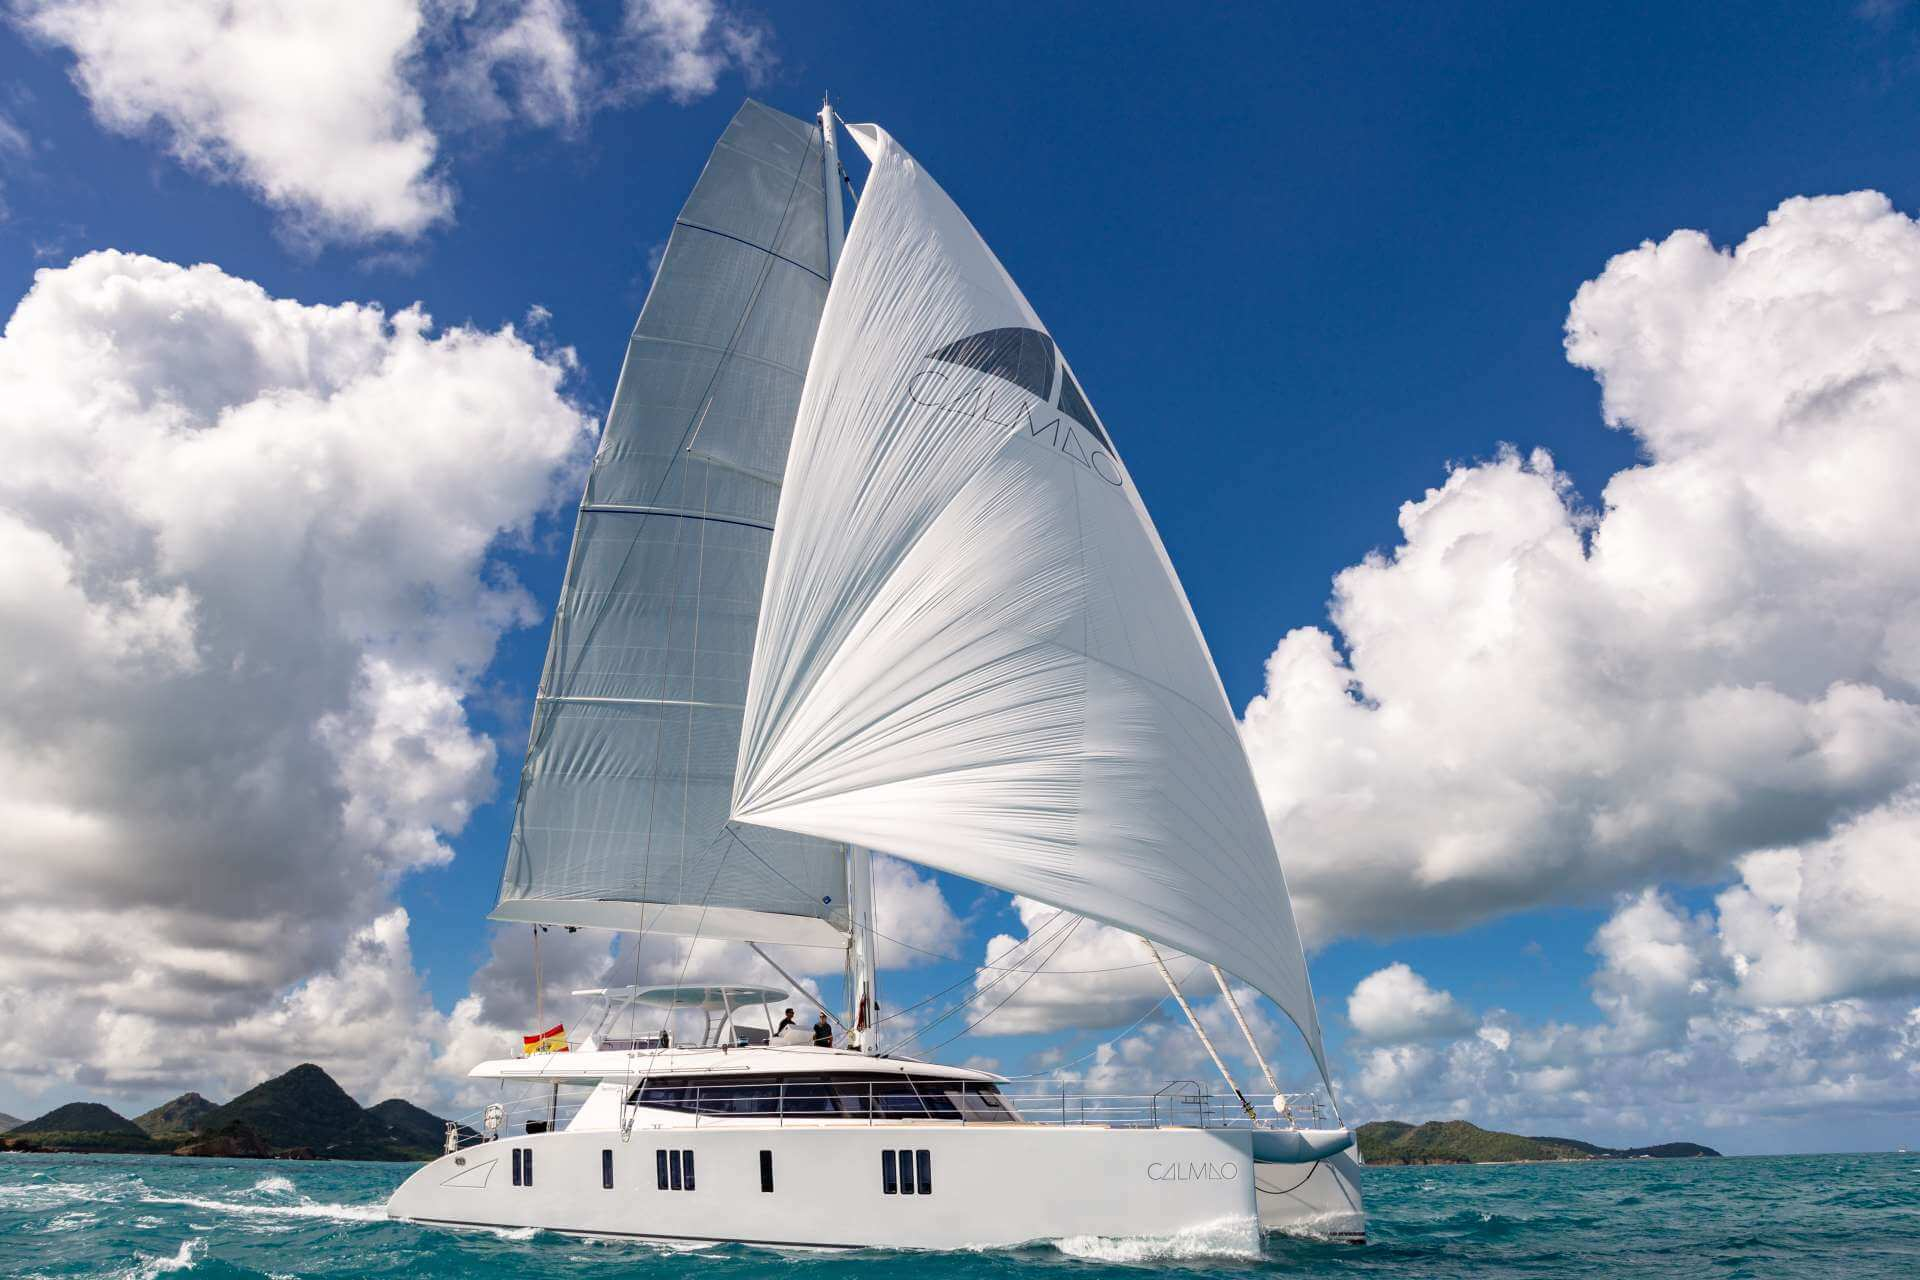 Calmao Sunreef Catamaran 4